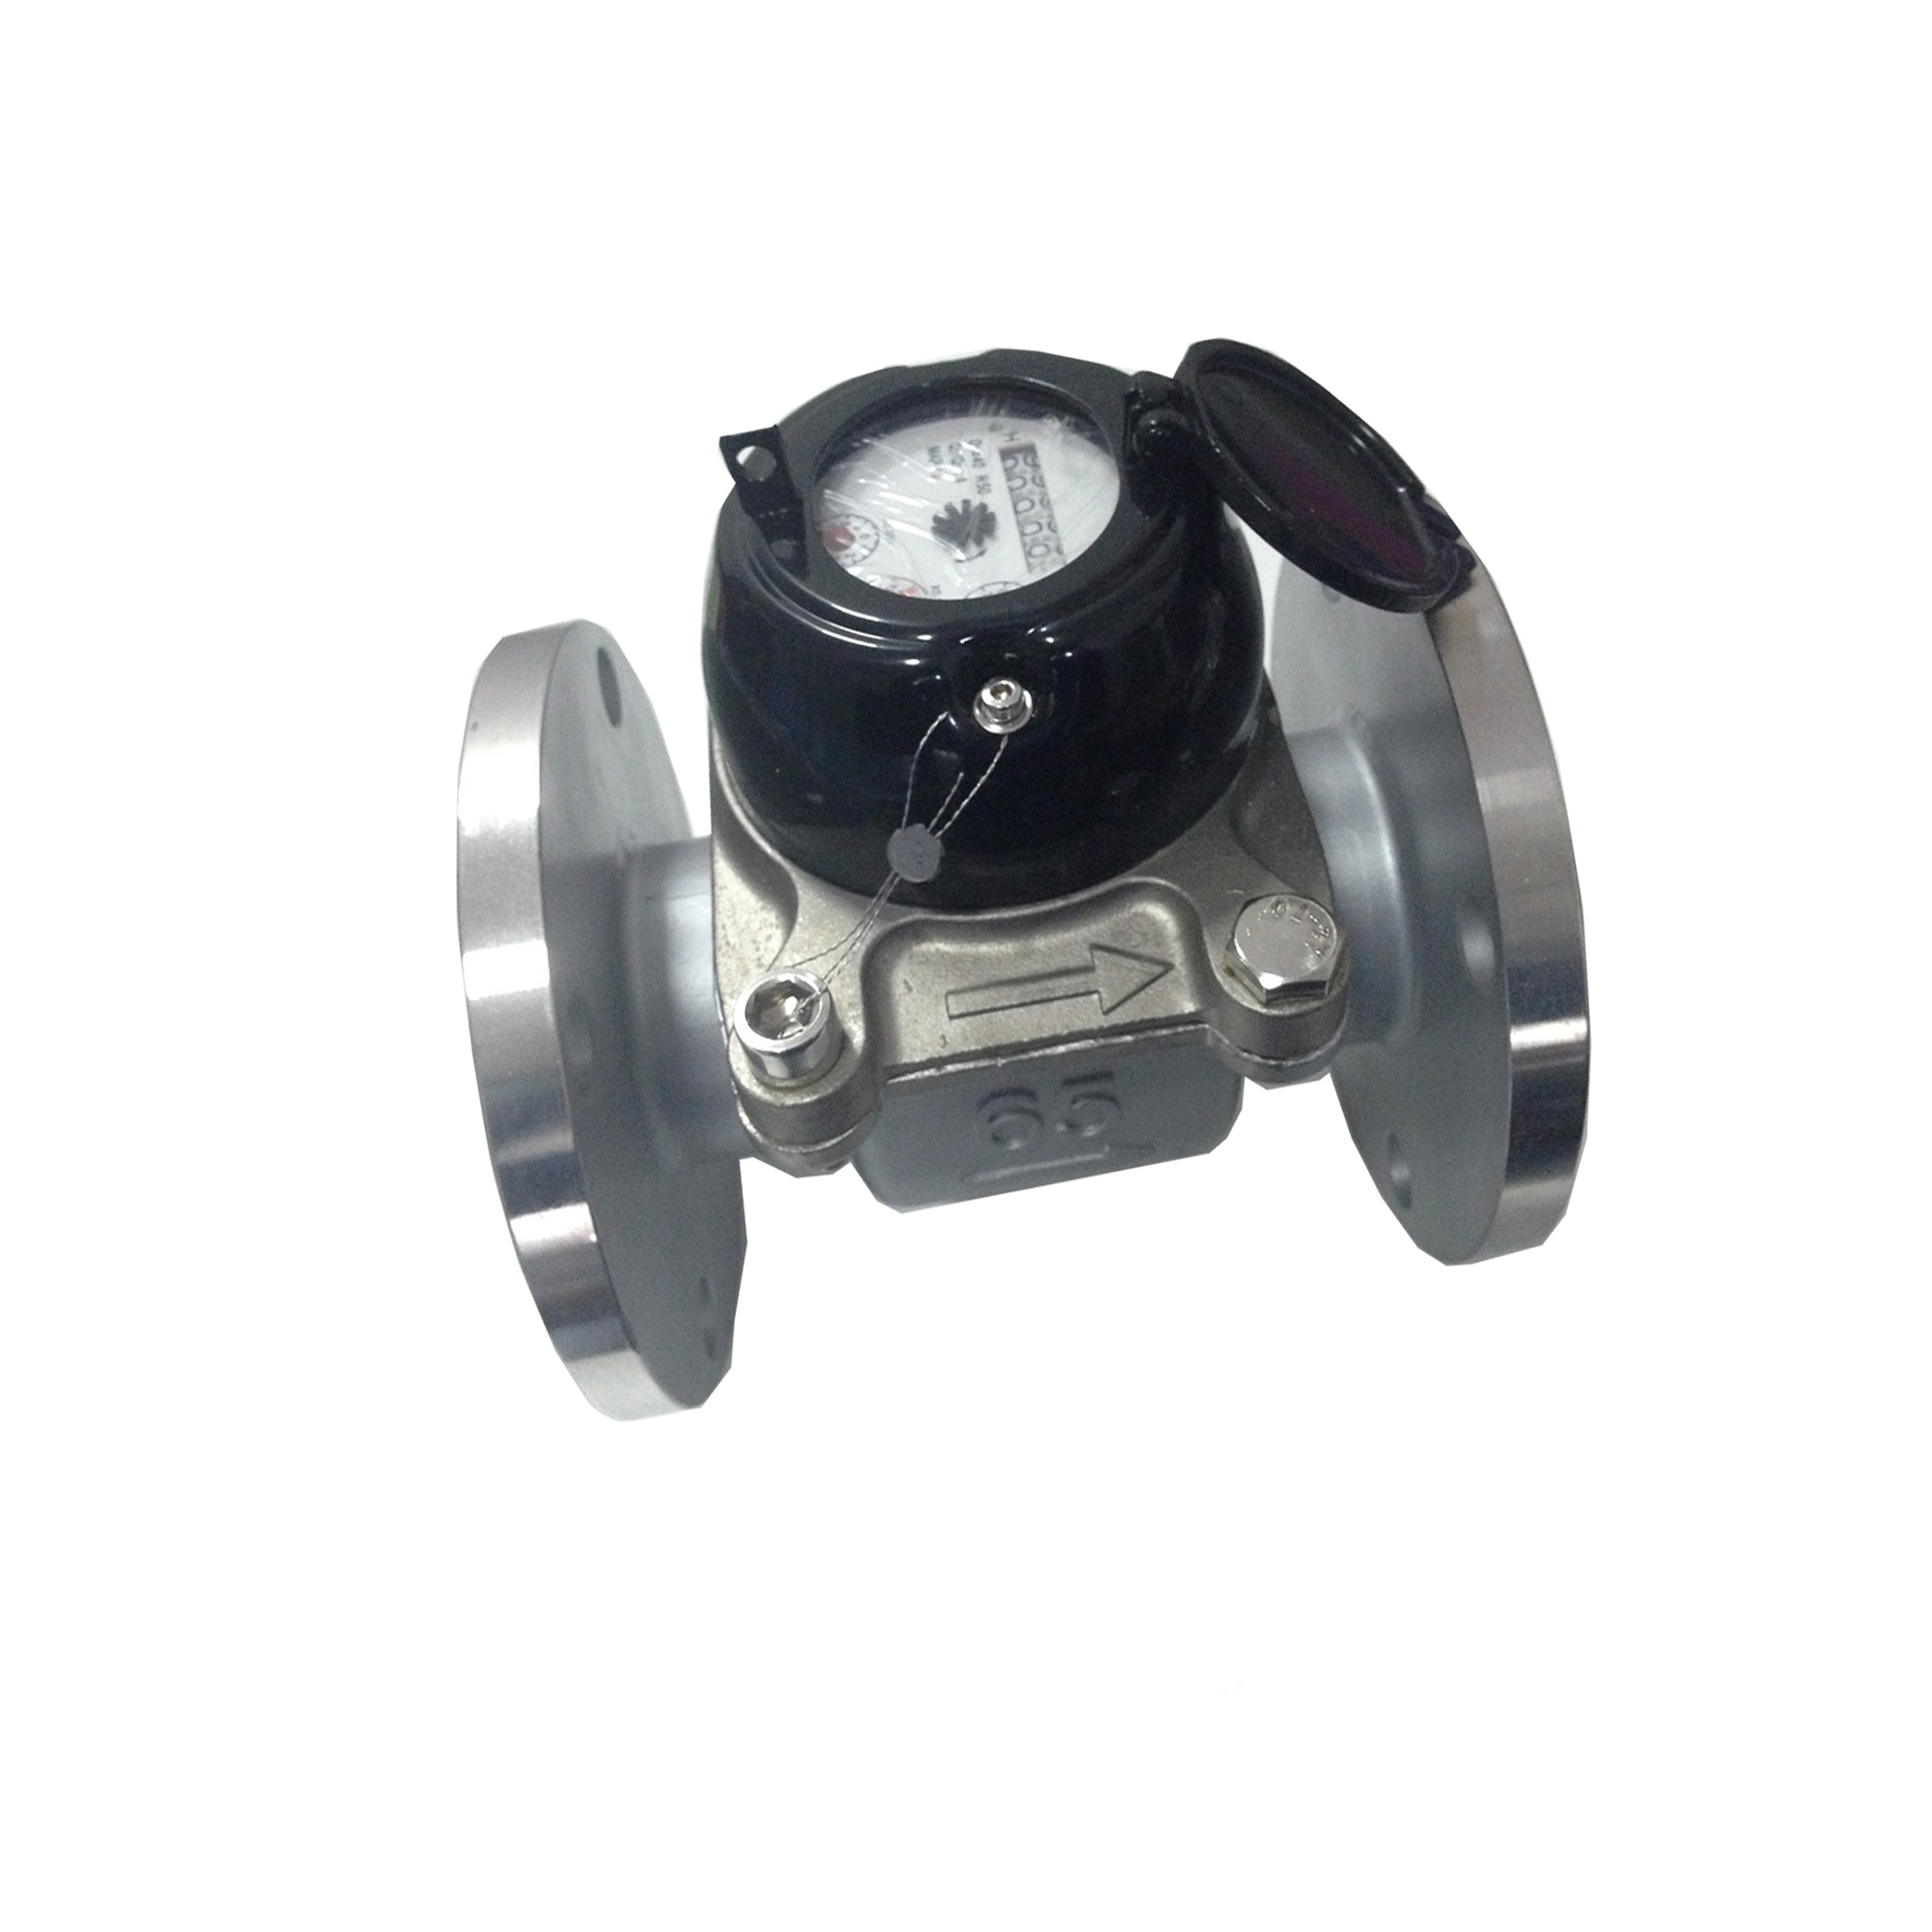 Woltman Stainless Water Meter  (Flange end) / มิเตอร์น้ำสแตนเลส